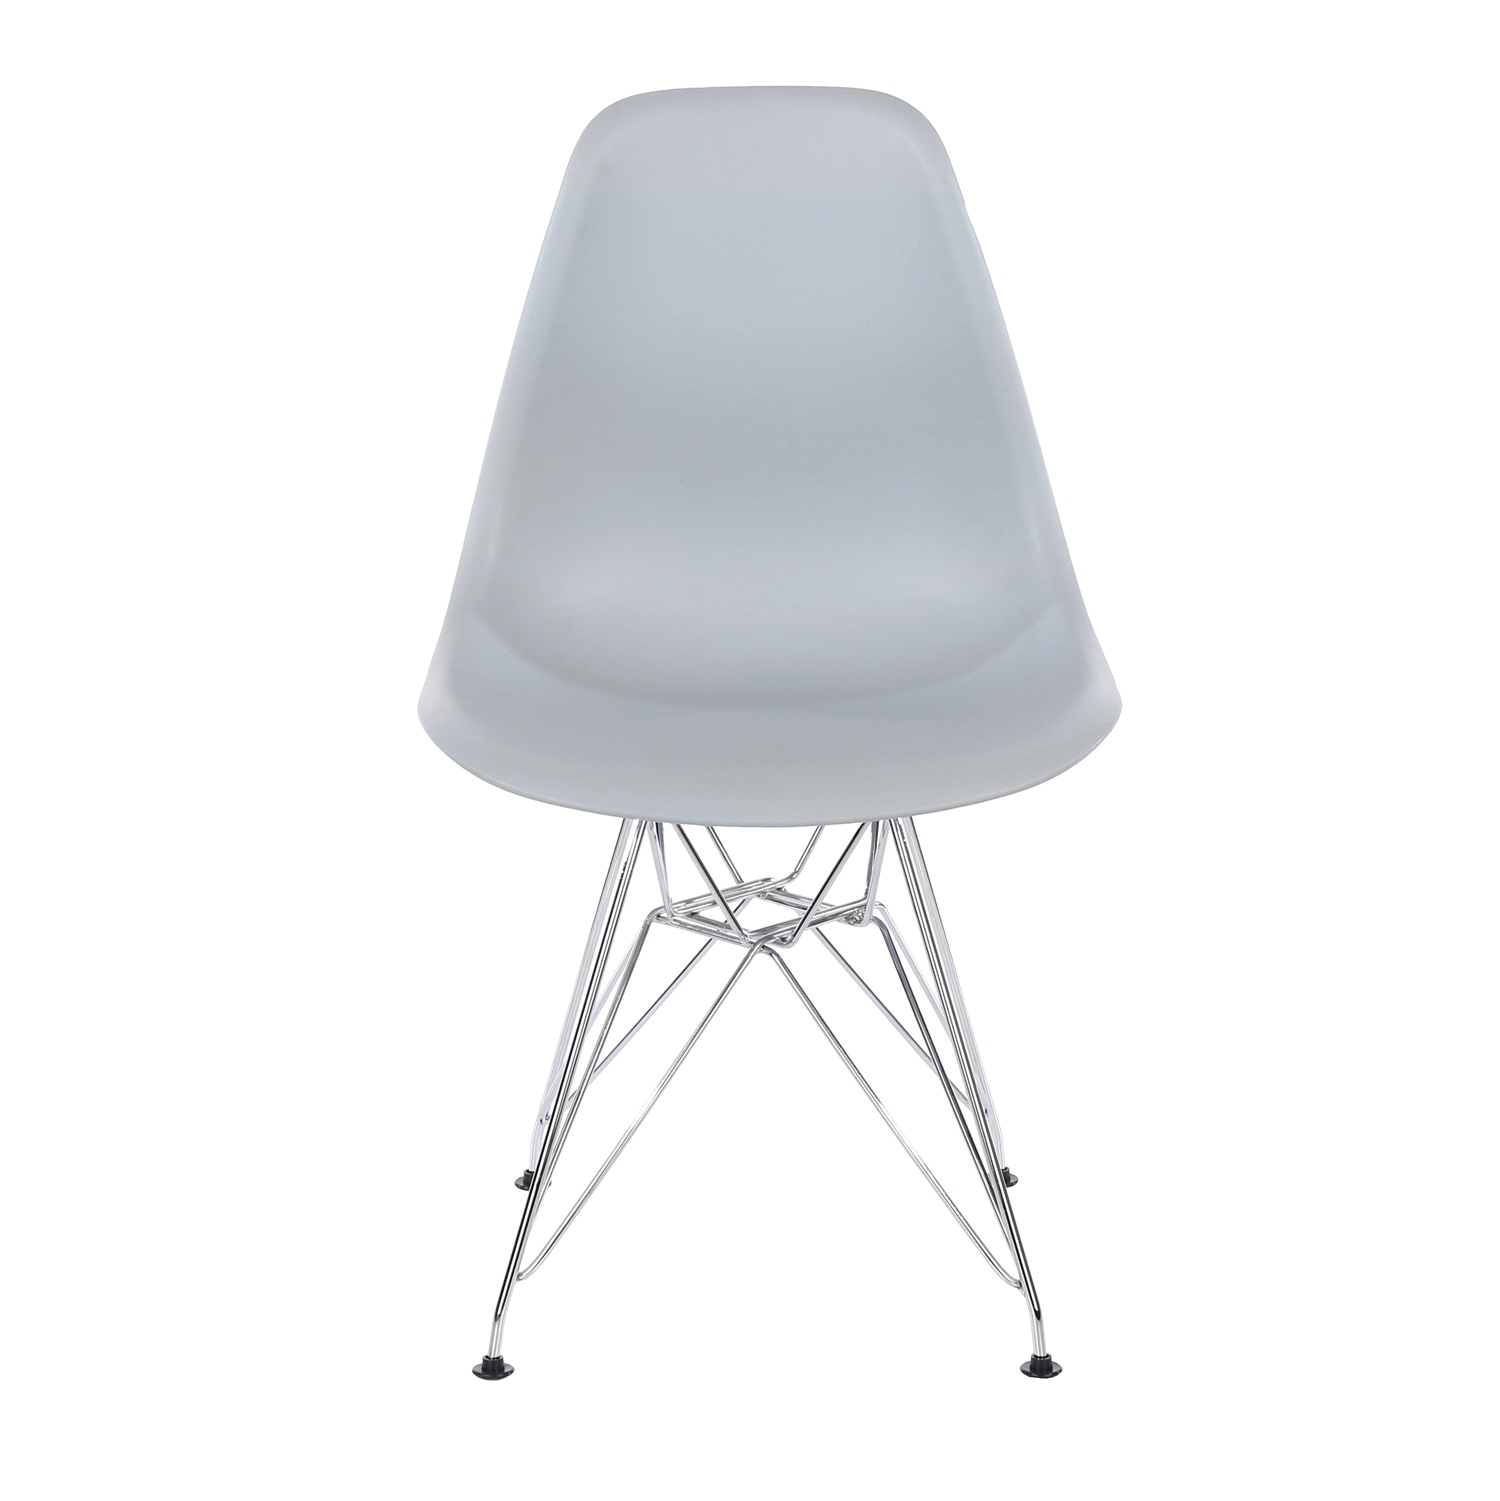 grey plastic chair with chrome legs (order in pairs)